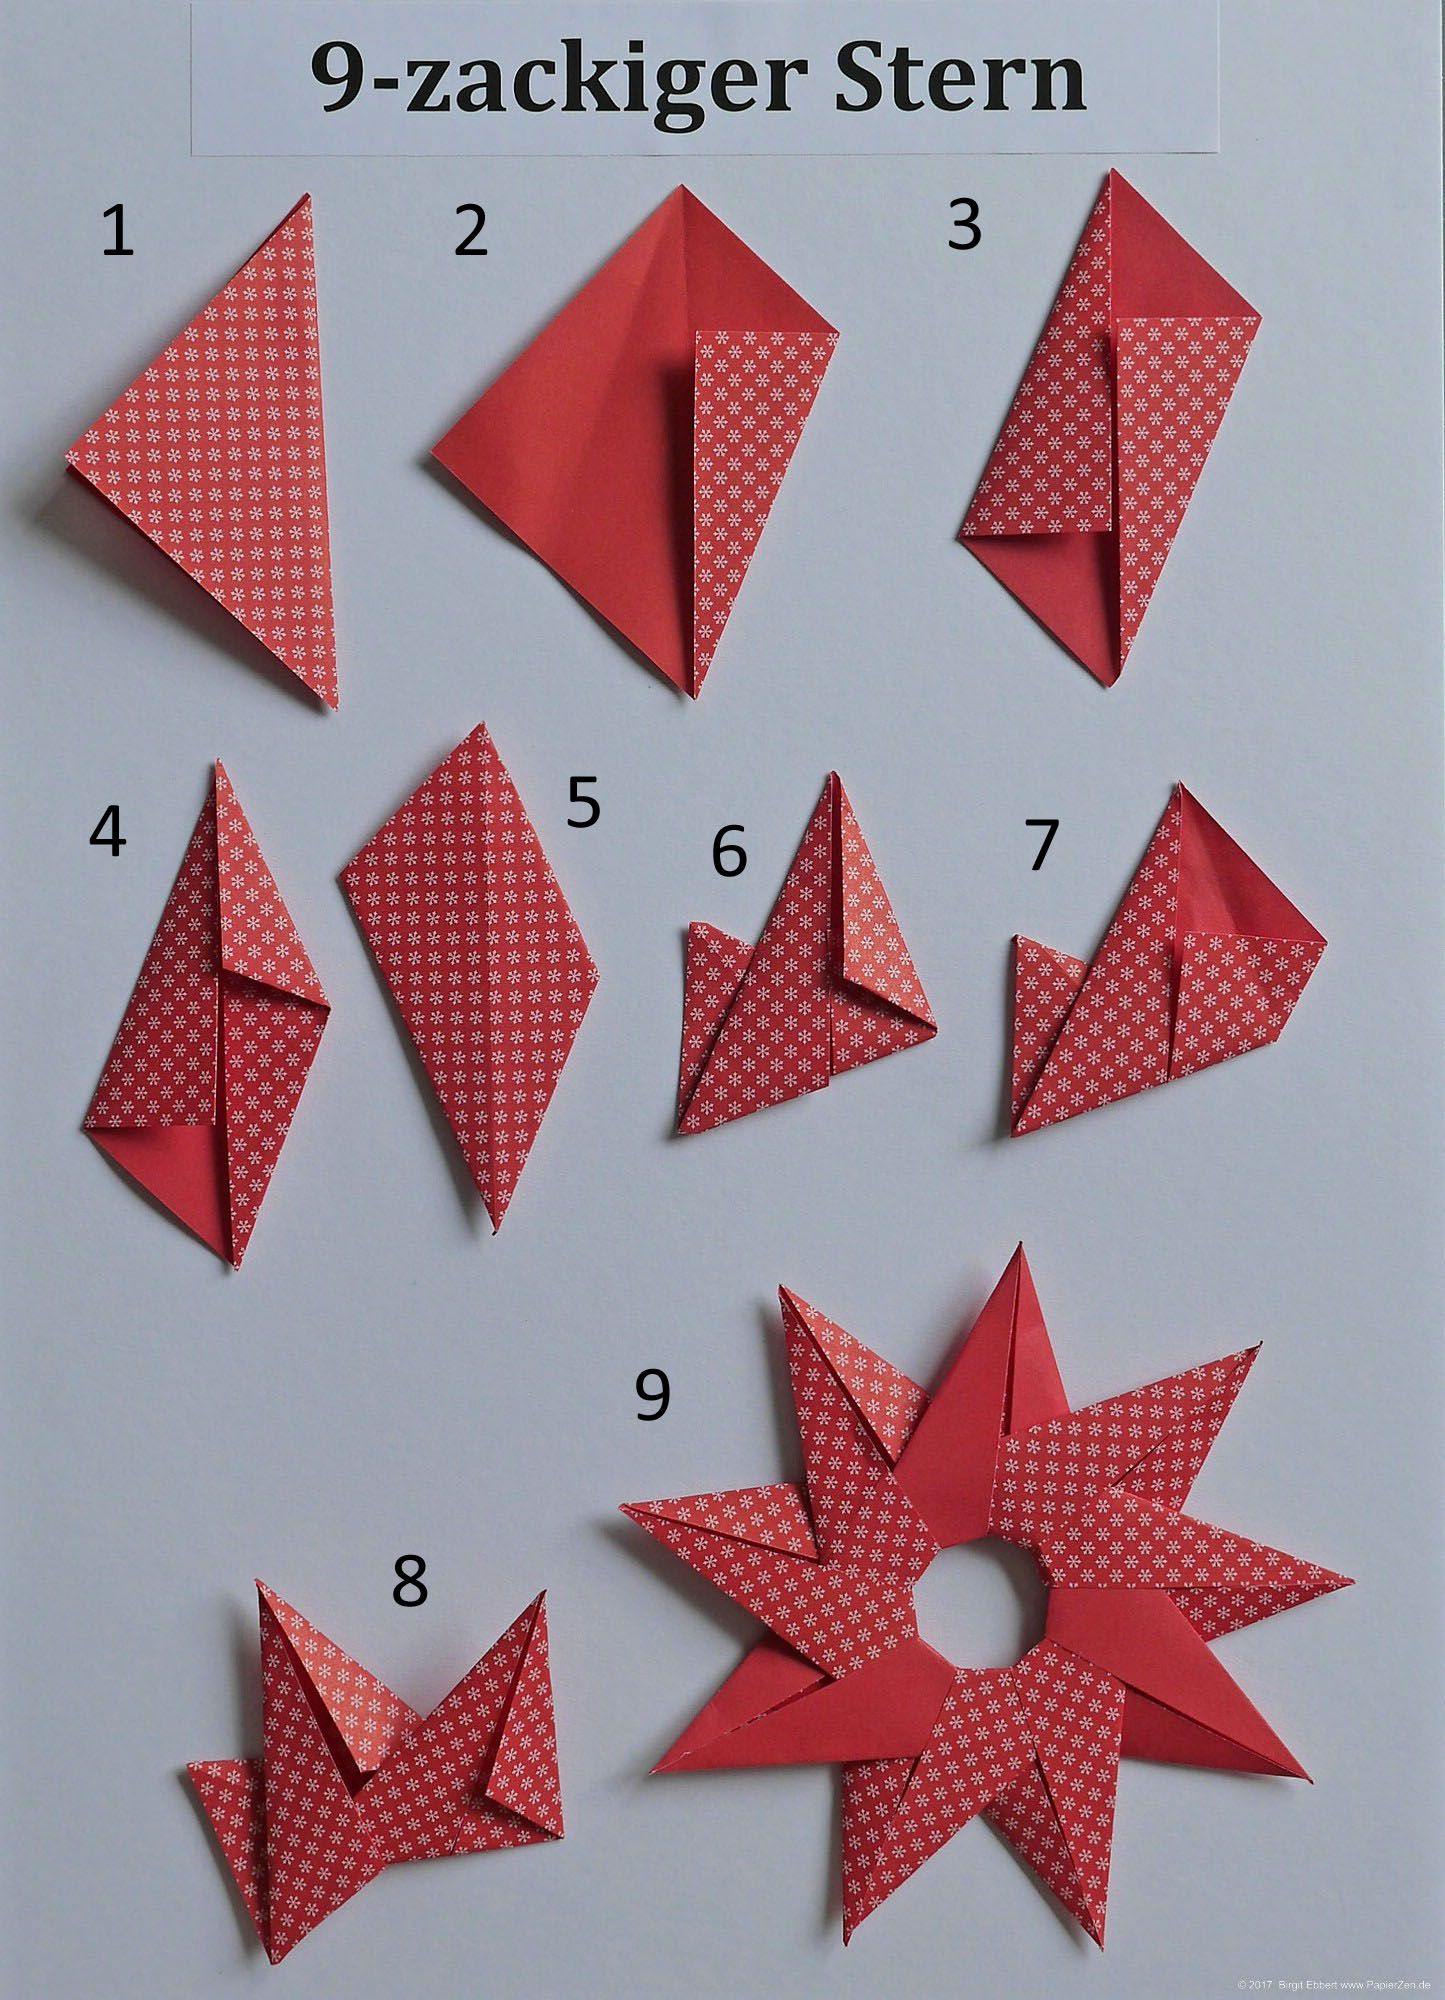 Pin by Doro on PapierZen   Origami examples, Origami easy, Origami ...